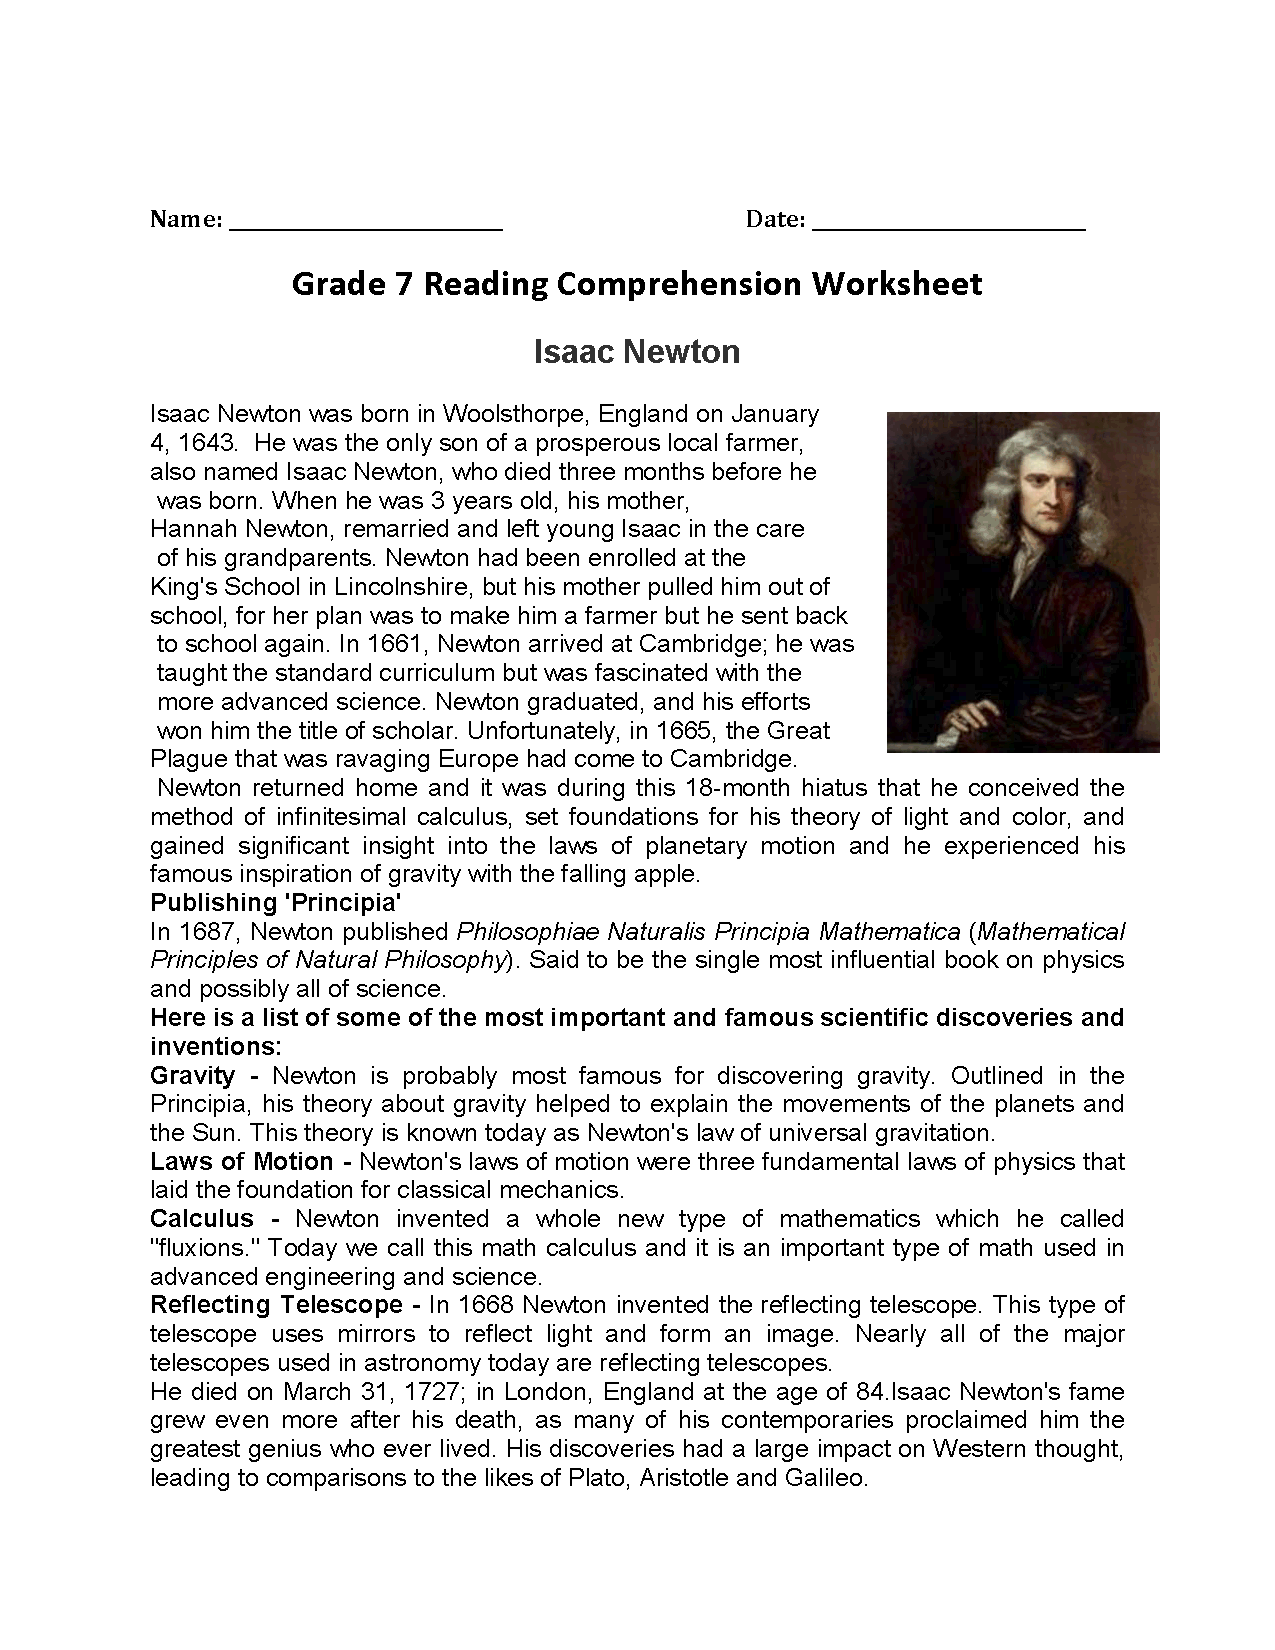 Isaac Newton<br>Seventh Grade Reading Worksheets